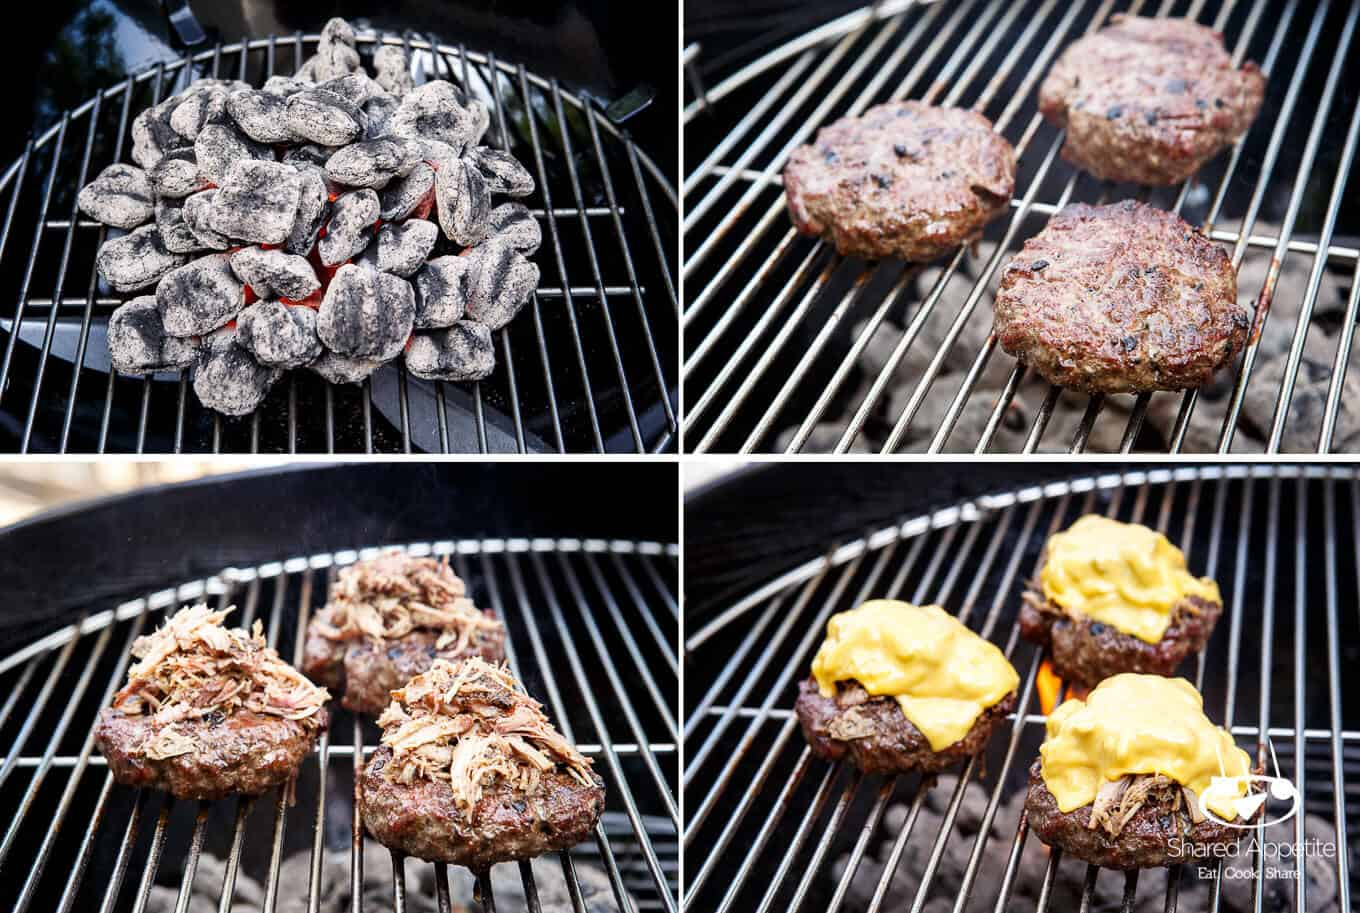 Showing the Process of Grilling the Pulled Pork Bacon Cheeseburgers | sharedappetite.com